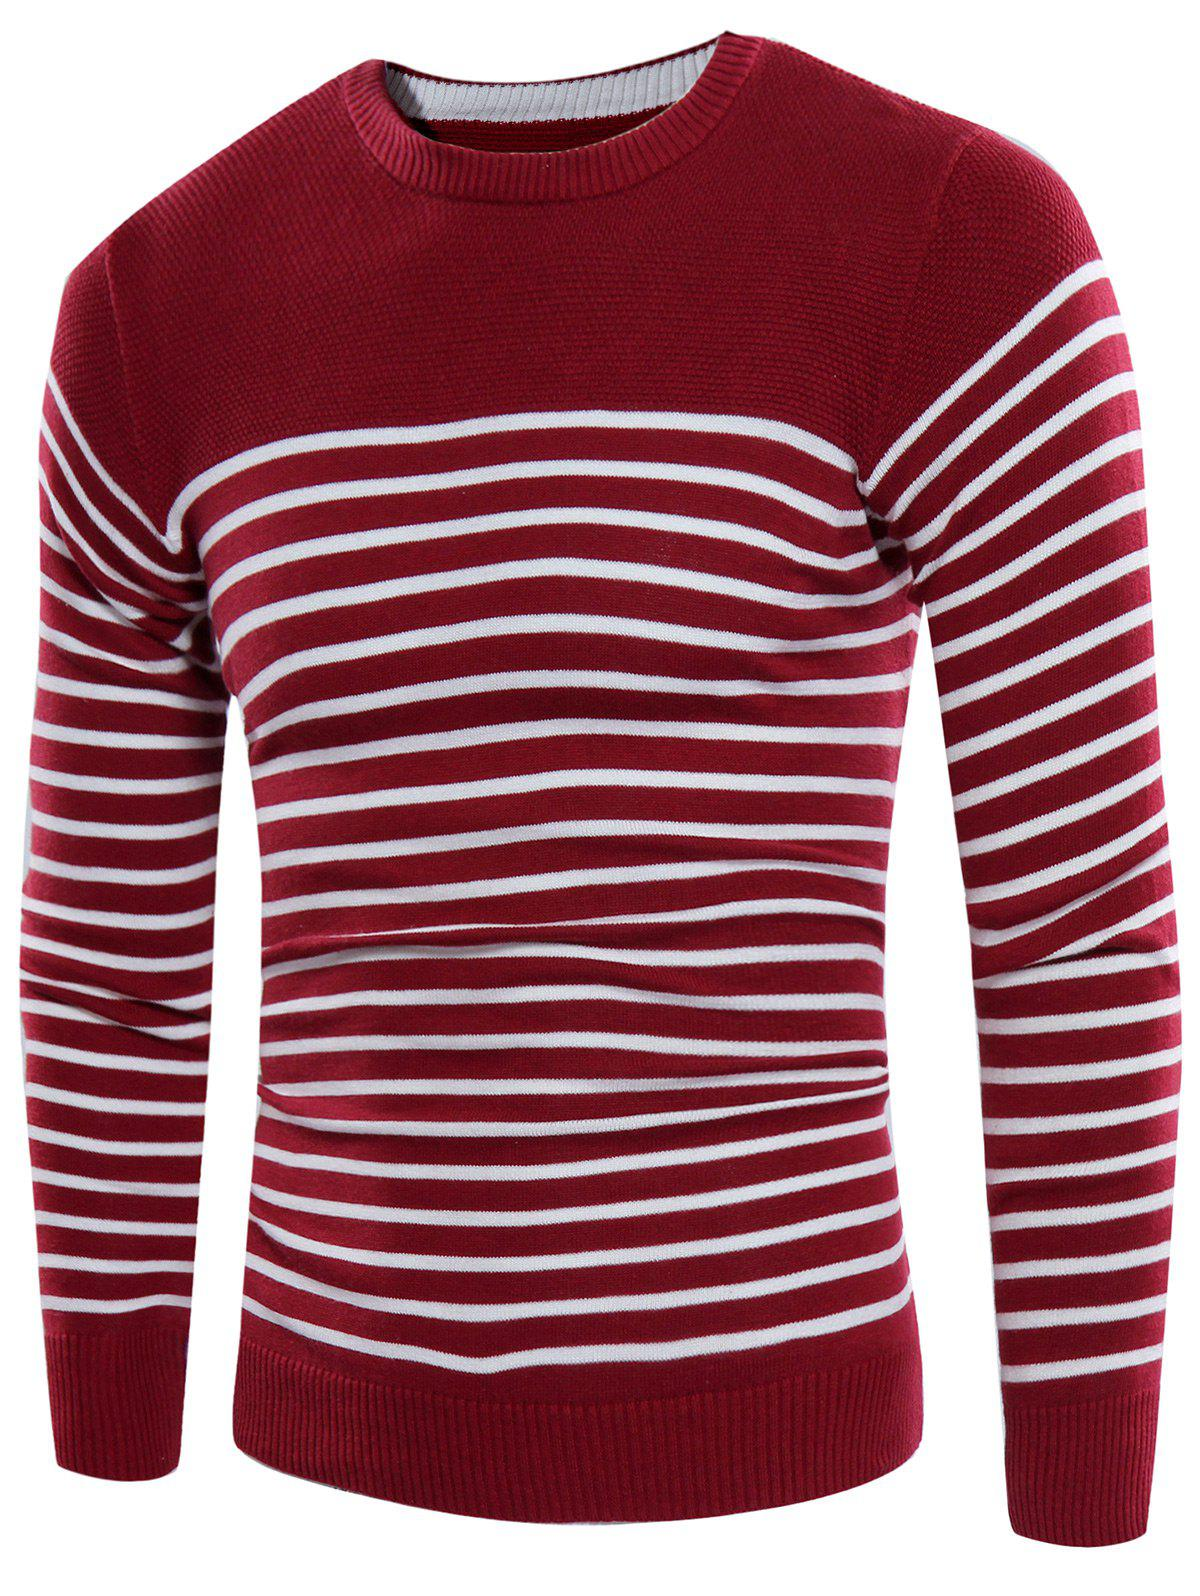 Crew Neck Rib Panel Striped Design Sweater - WINE RED L